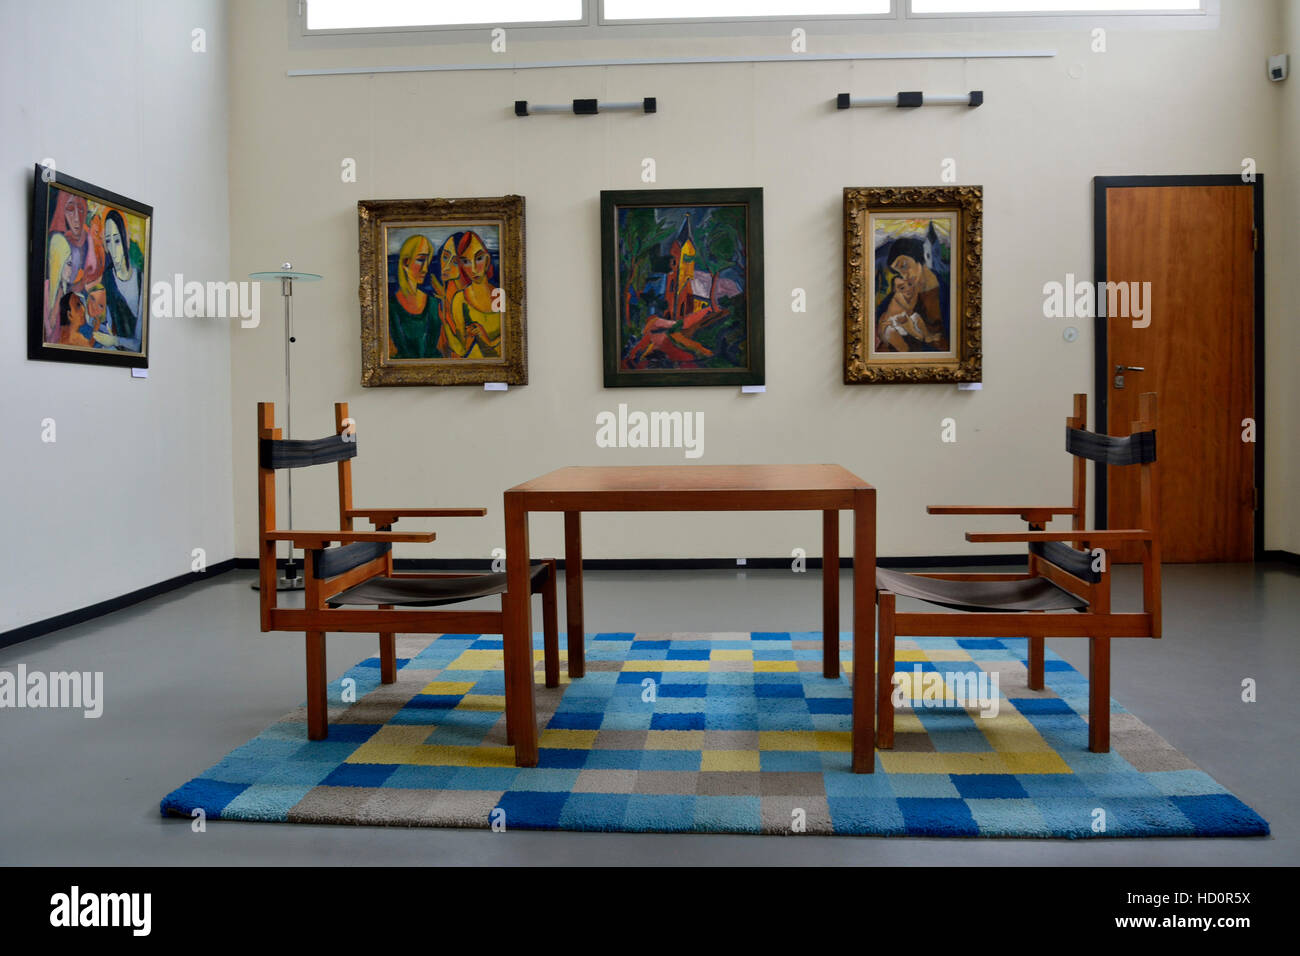 interior of the haus am horn building in weimar stock photo royalty free image 128481302 alamy. Black Bedroom Furniture Sets. Home Design Ideas